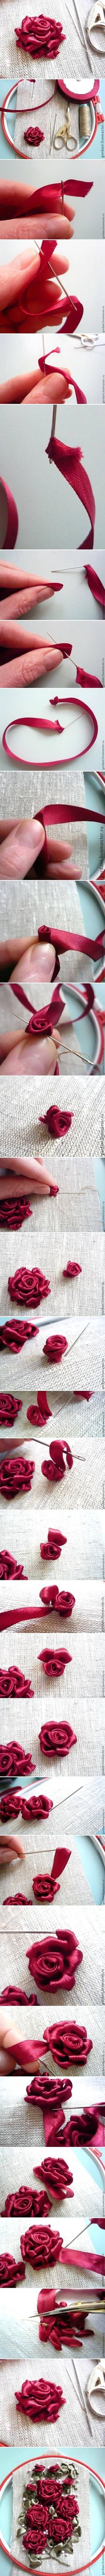 "Love silk flower embroidery and crazy quilt embroidery ""DIY Nice Beautiful Ribbon Rose DIY Nice Beautiful Ribbon Rose by diyforever"", ""DIY Ribbon Rose f Ribbon Art, Diy Ribbon, Ribbon Crafts, Flower Crafts, Ribbon Rose, Organza Ribbon, Silk Ribbon Embroidery, Embroidery Stitches, Hand Embroidery"